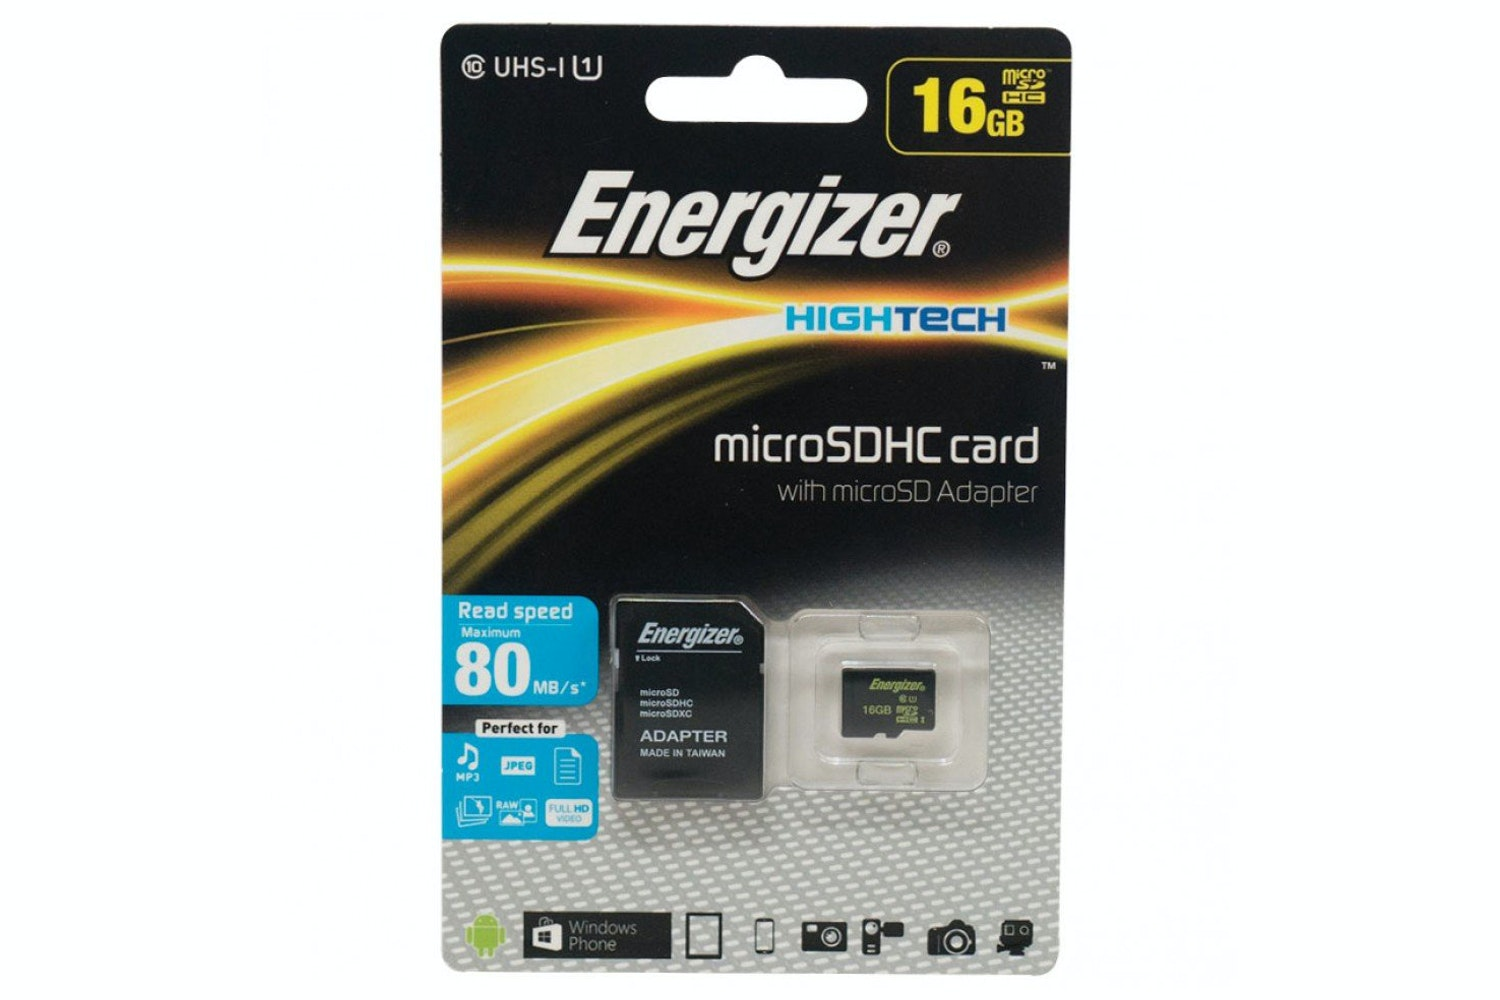 Energizer Hightech Micro SDHC Card and Micro SD Adapter | 16GB